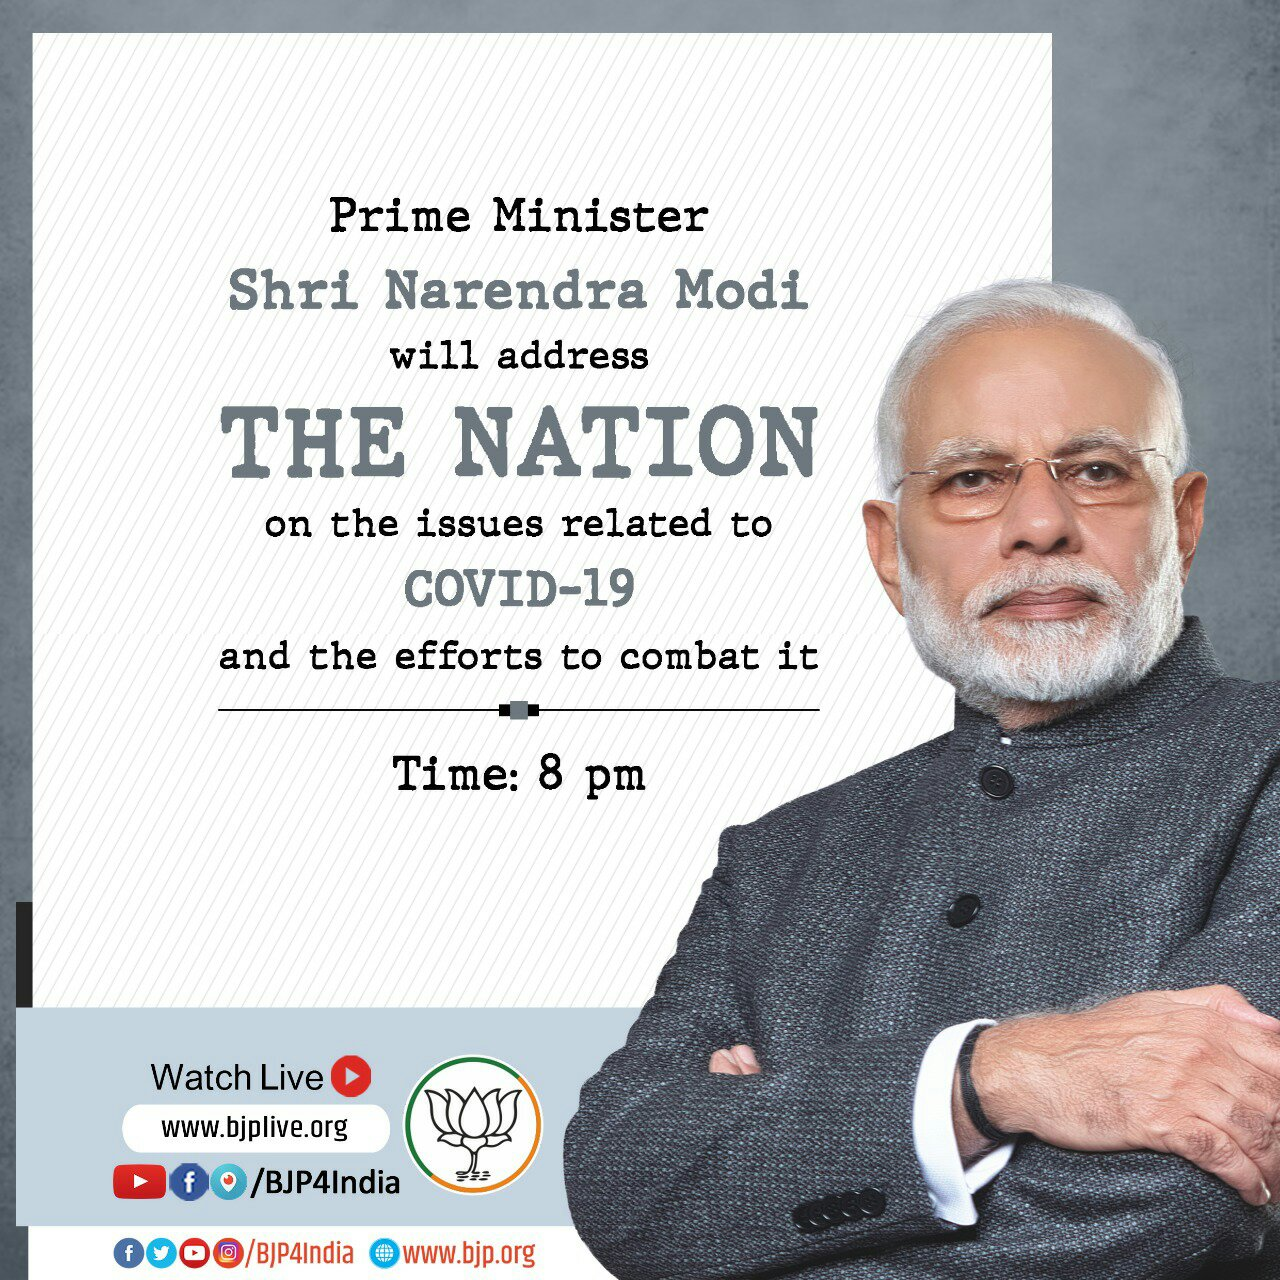 Narendra modi address today live at 8pm